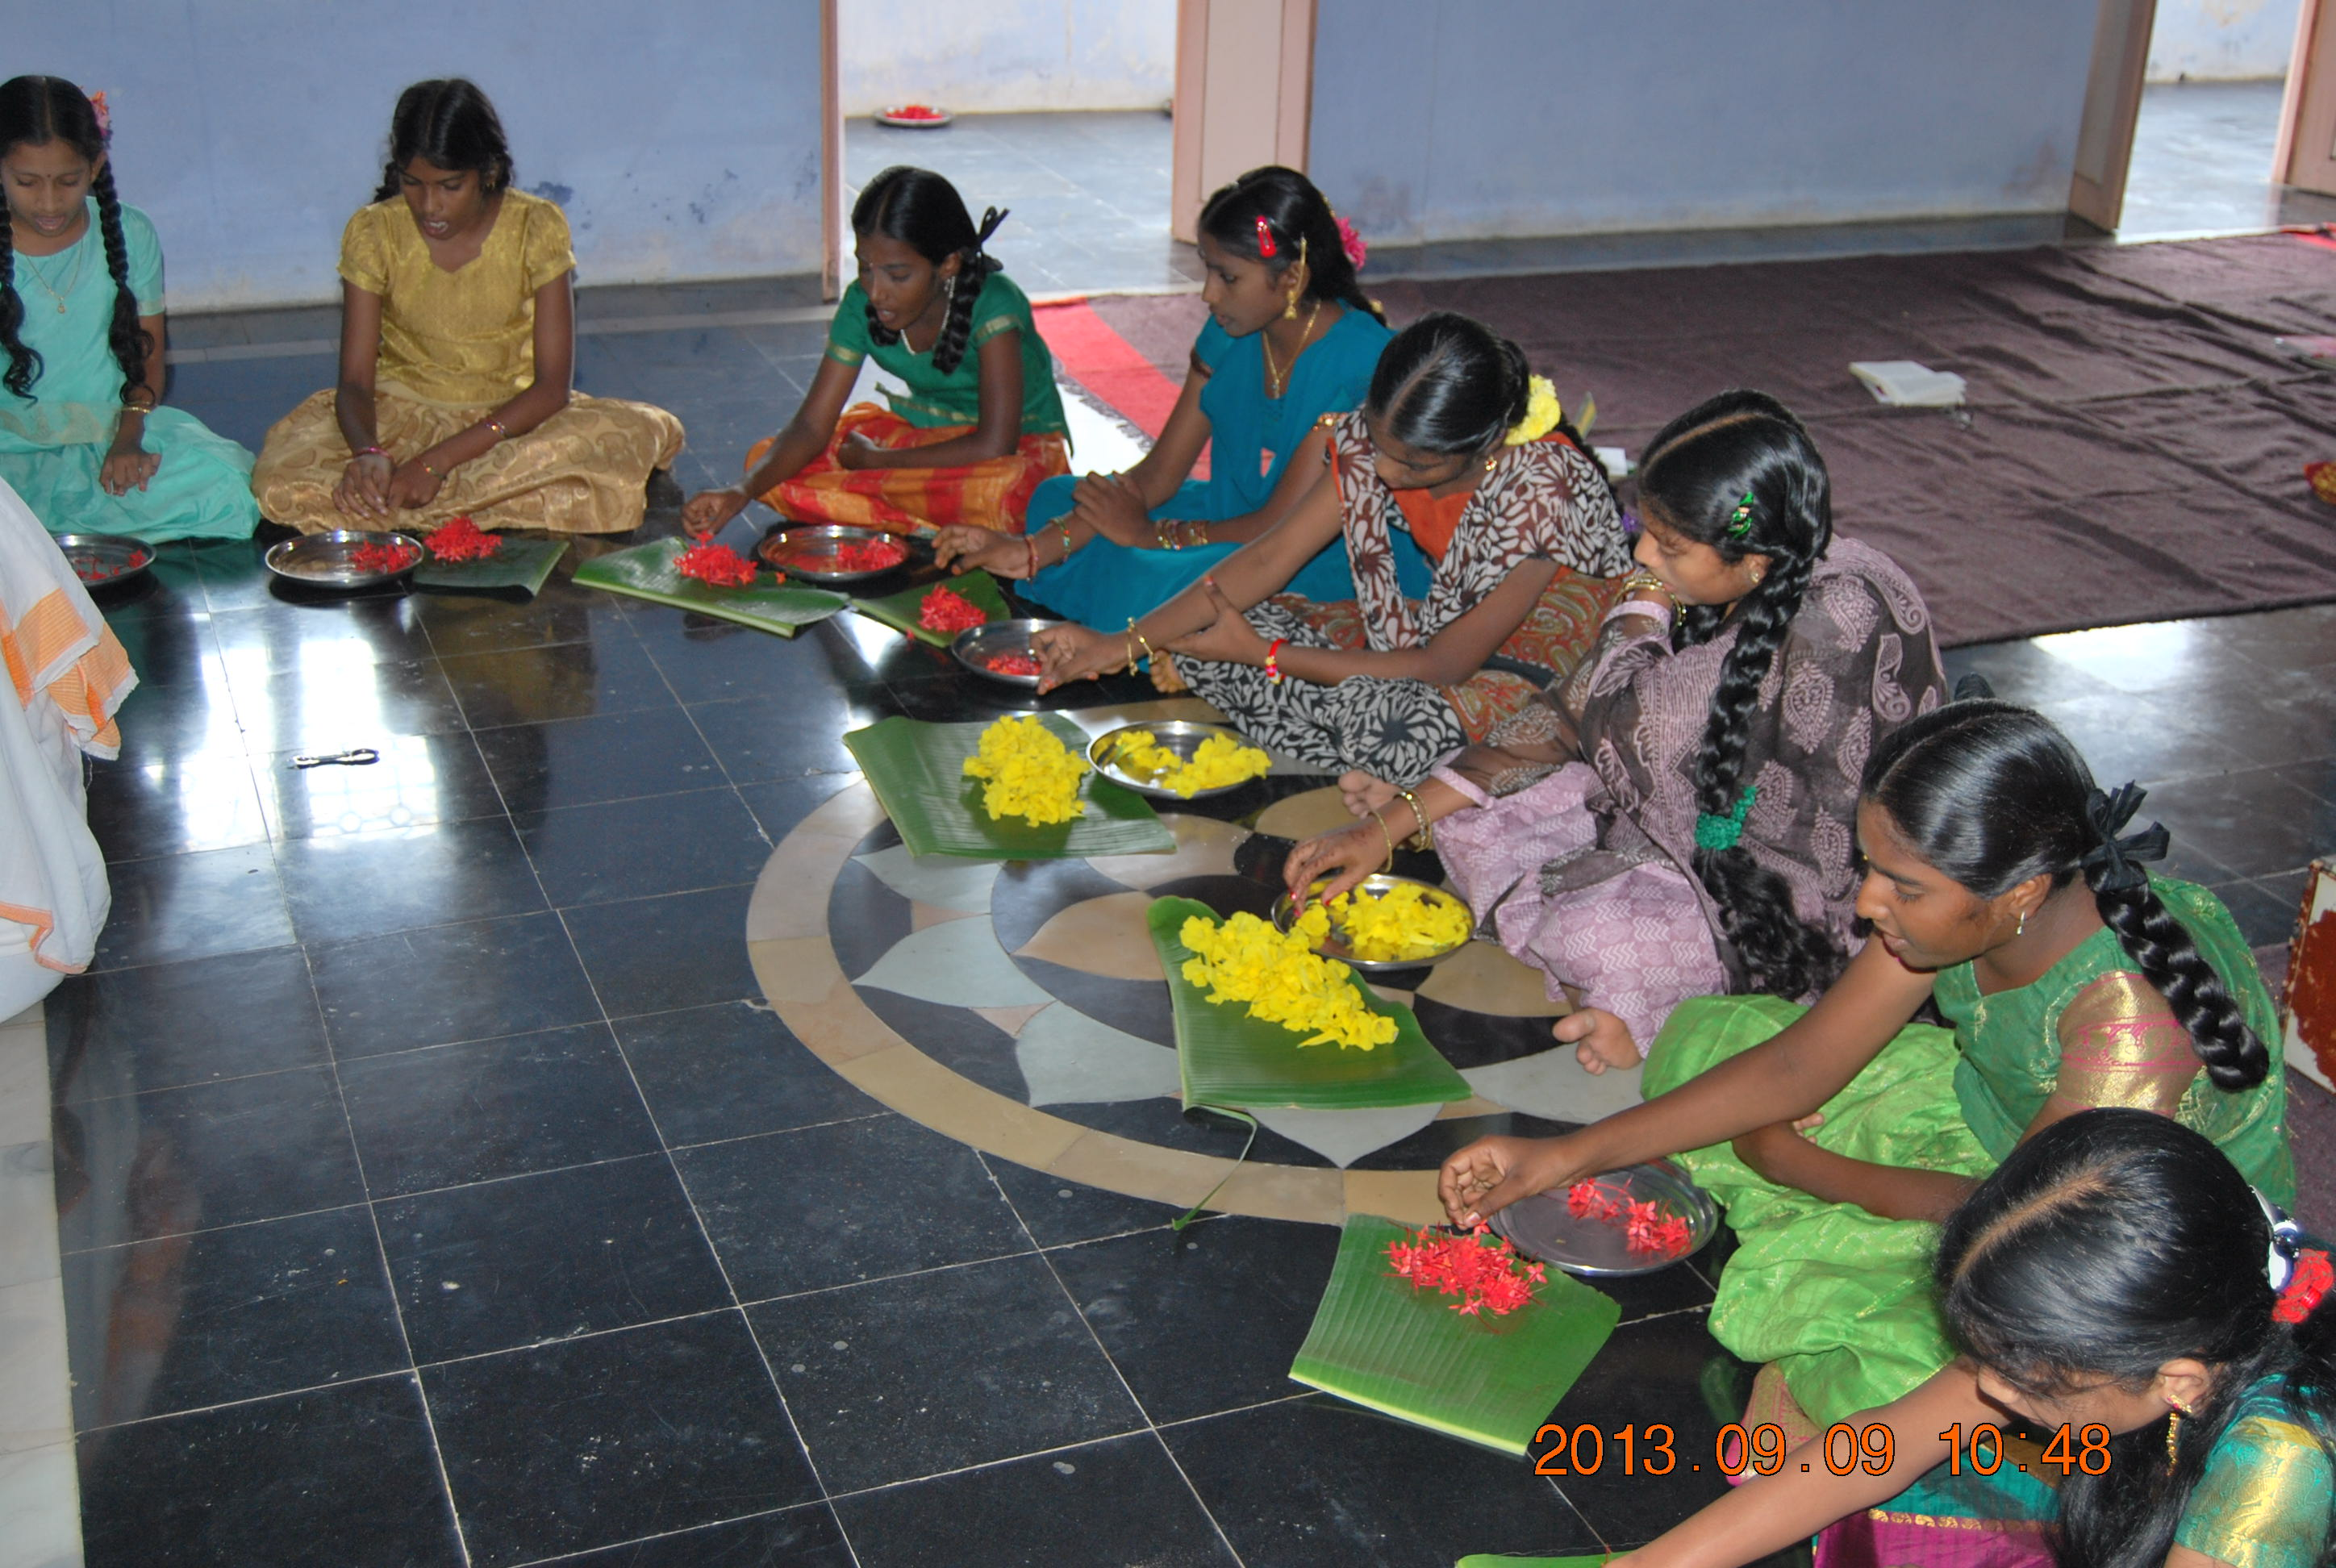 Children joing the puja